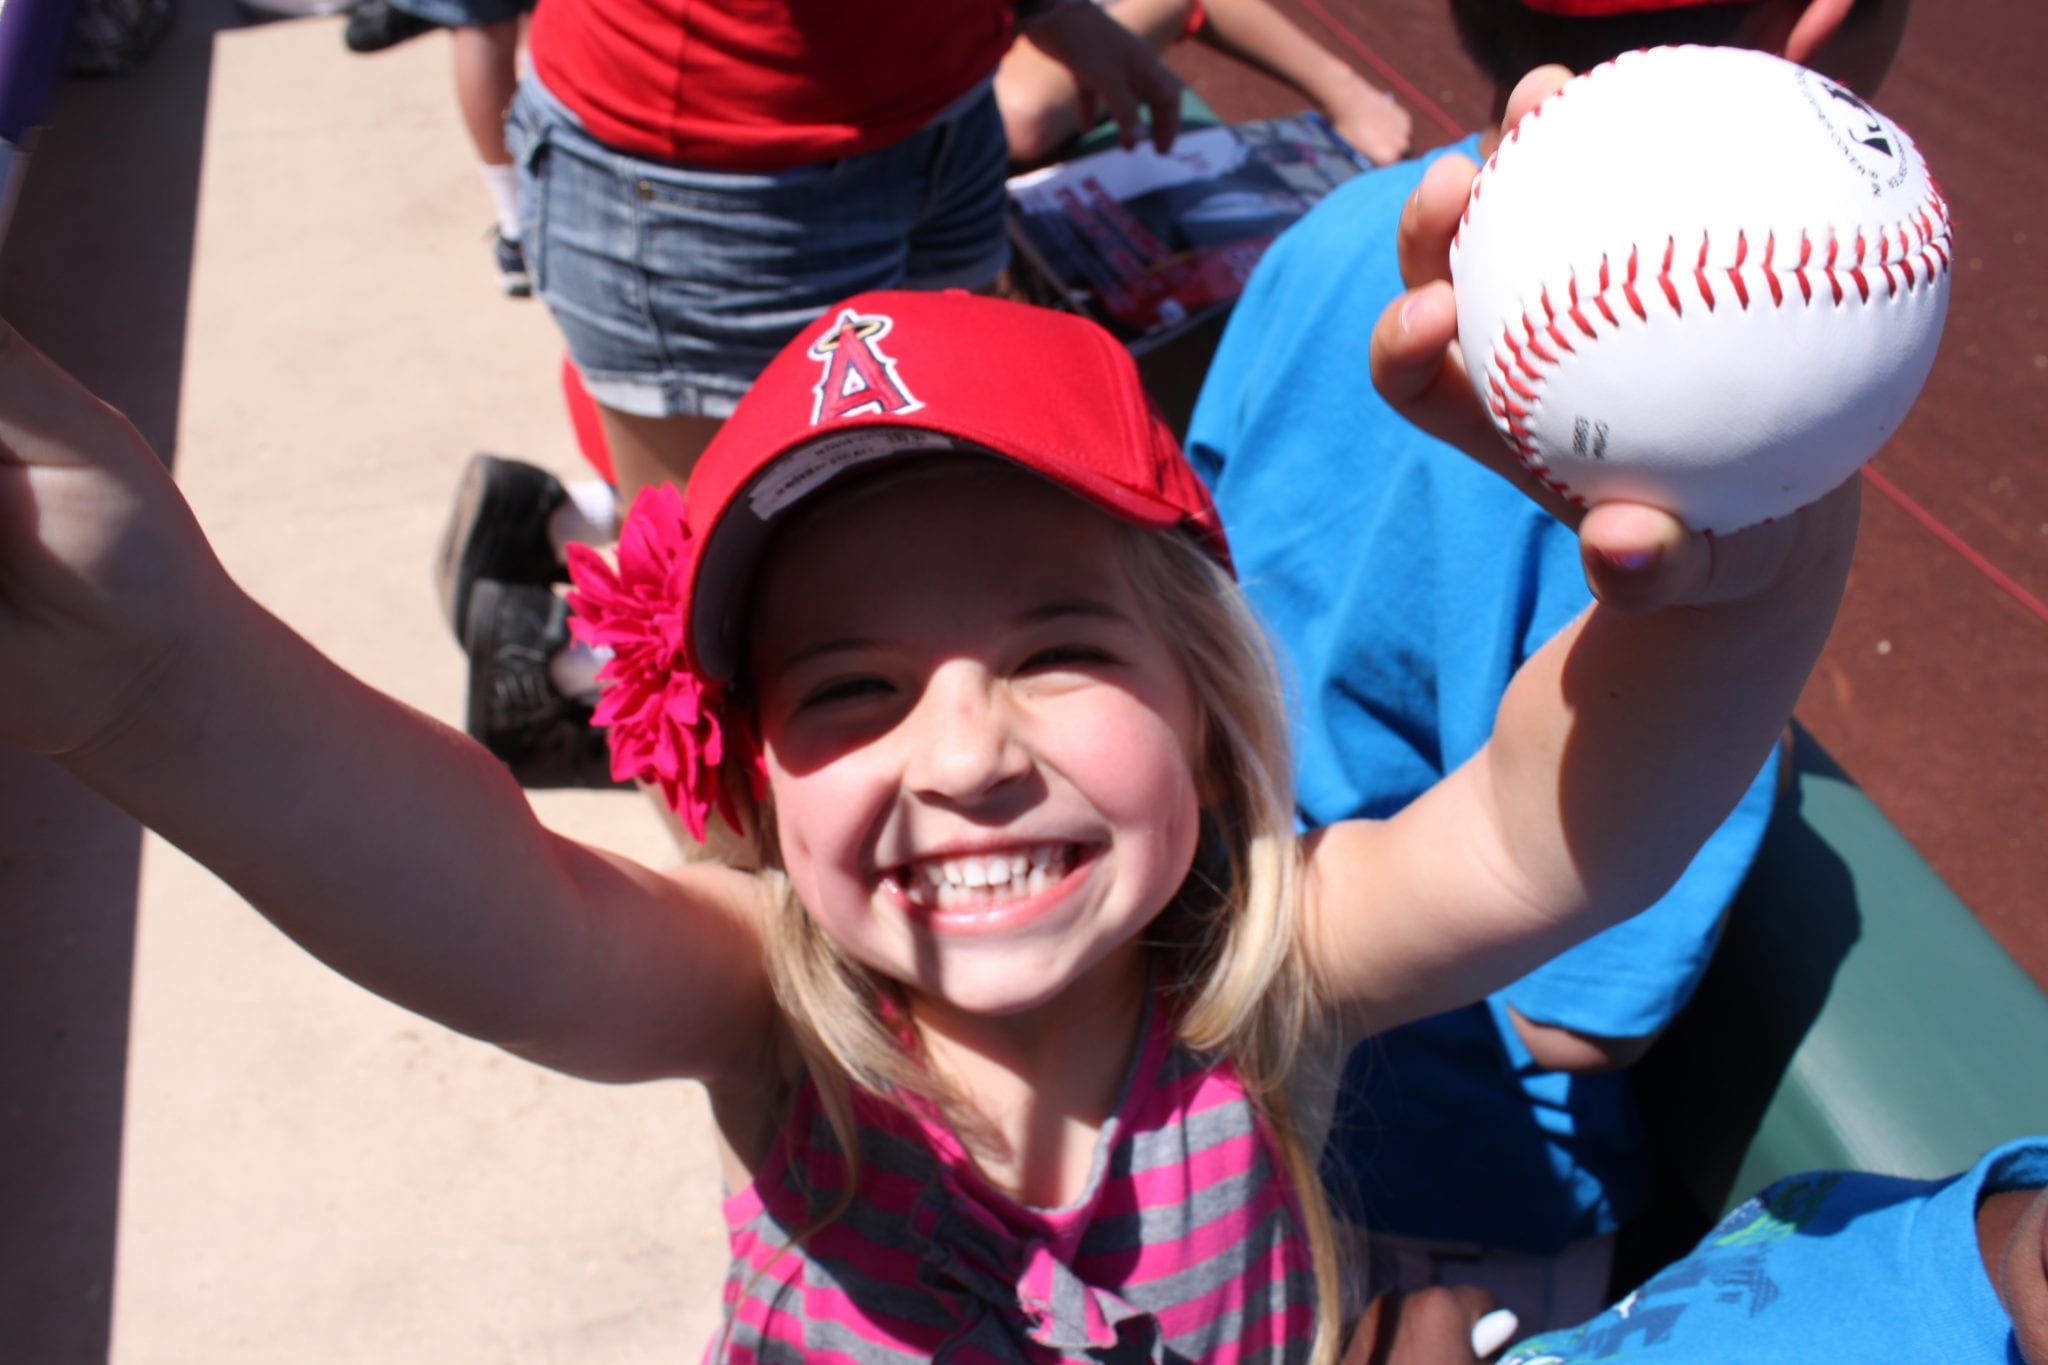 Looking for things to do in Arizona for spring break? Check out my Top 5 things to do in Arizona for spring break besides baseball